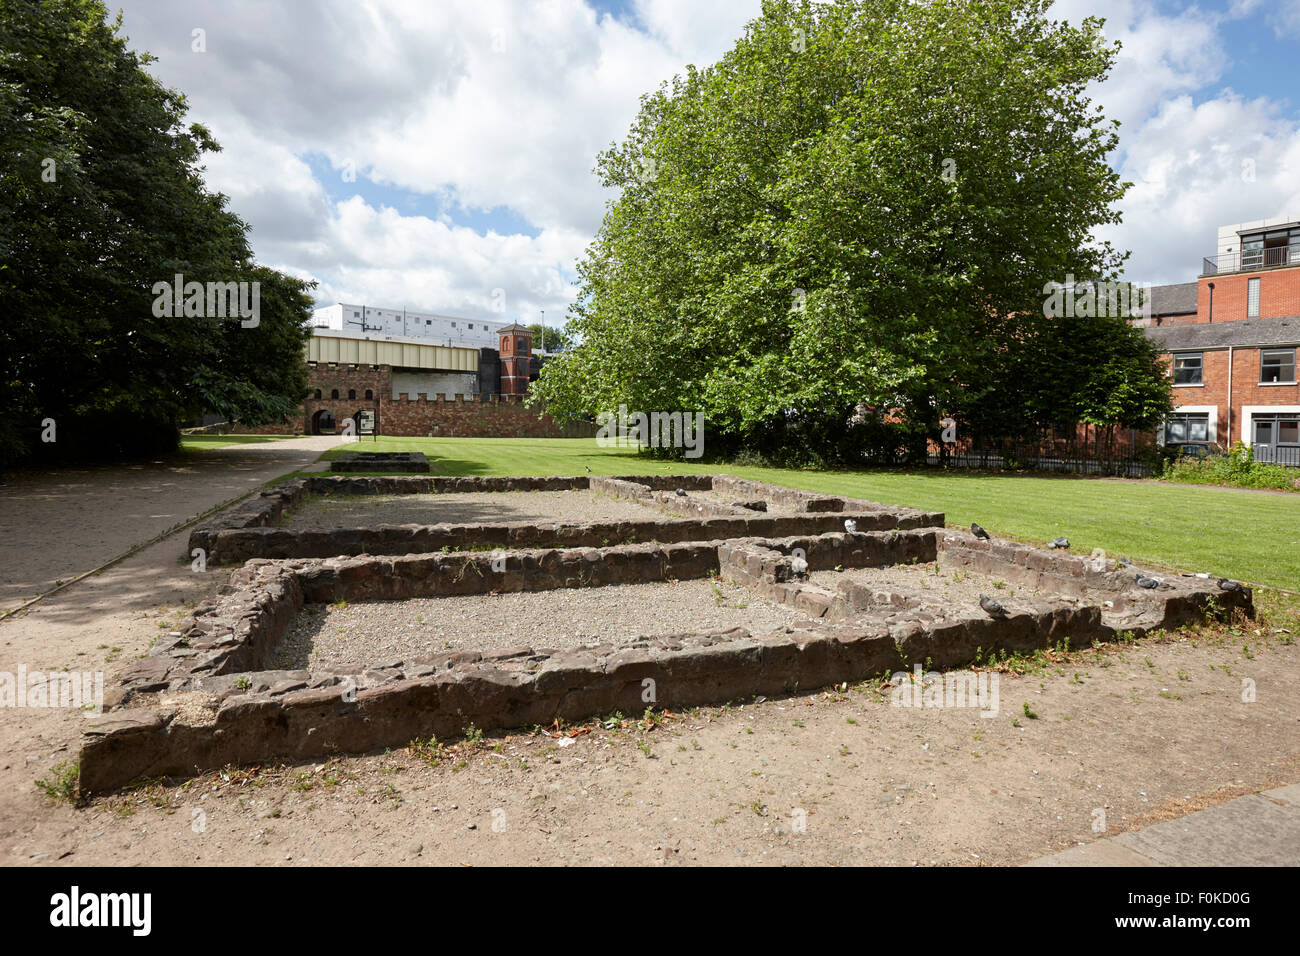 remains of the old roman fort mamucium in castlefield Manchester England UK - Stock Image